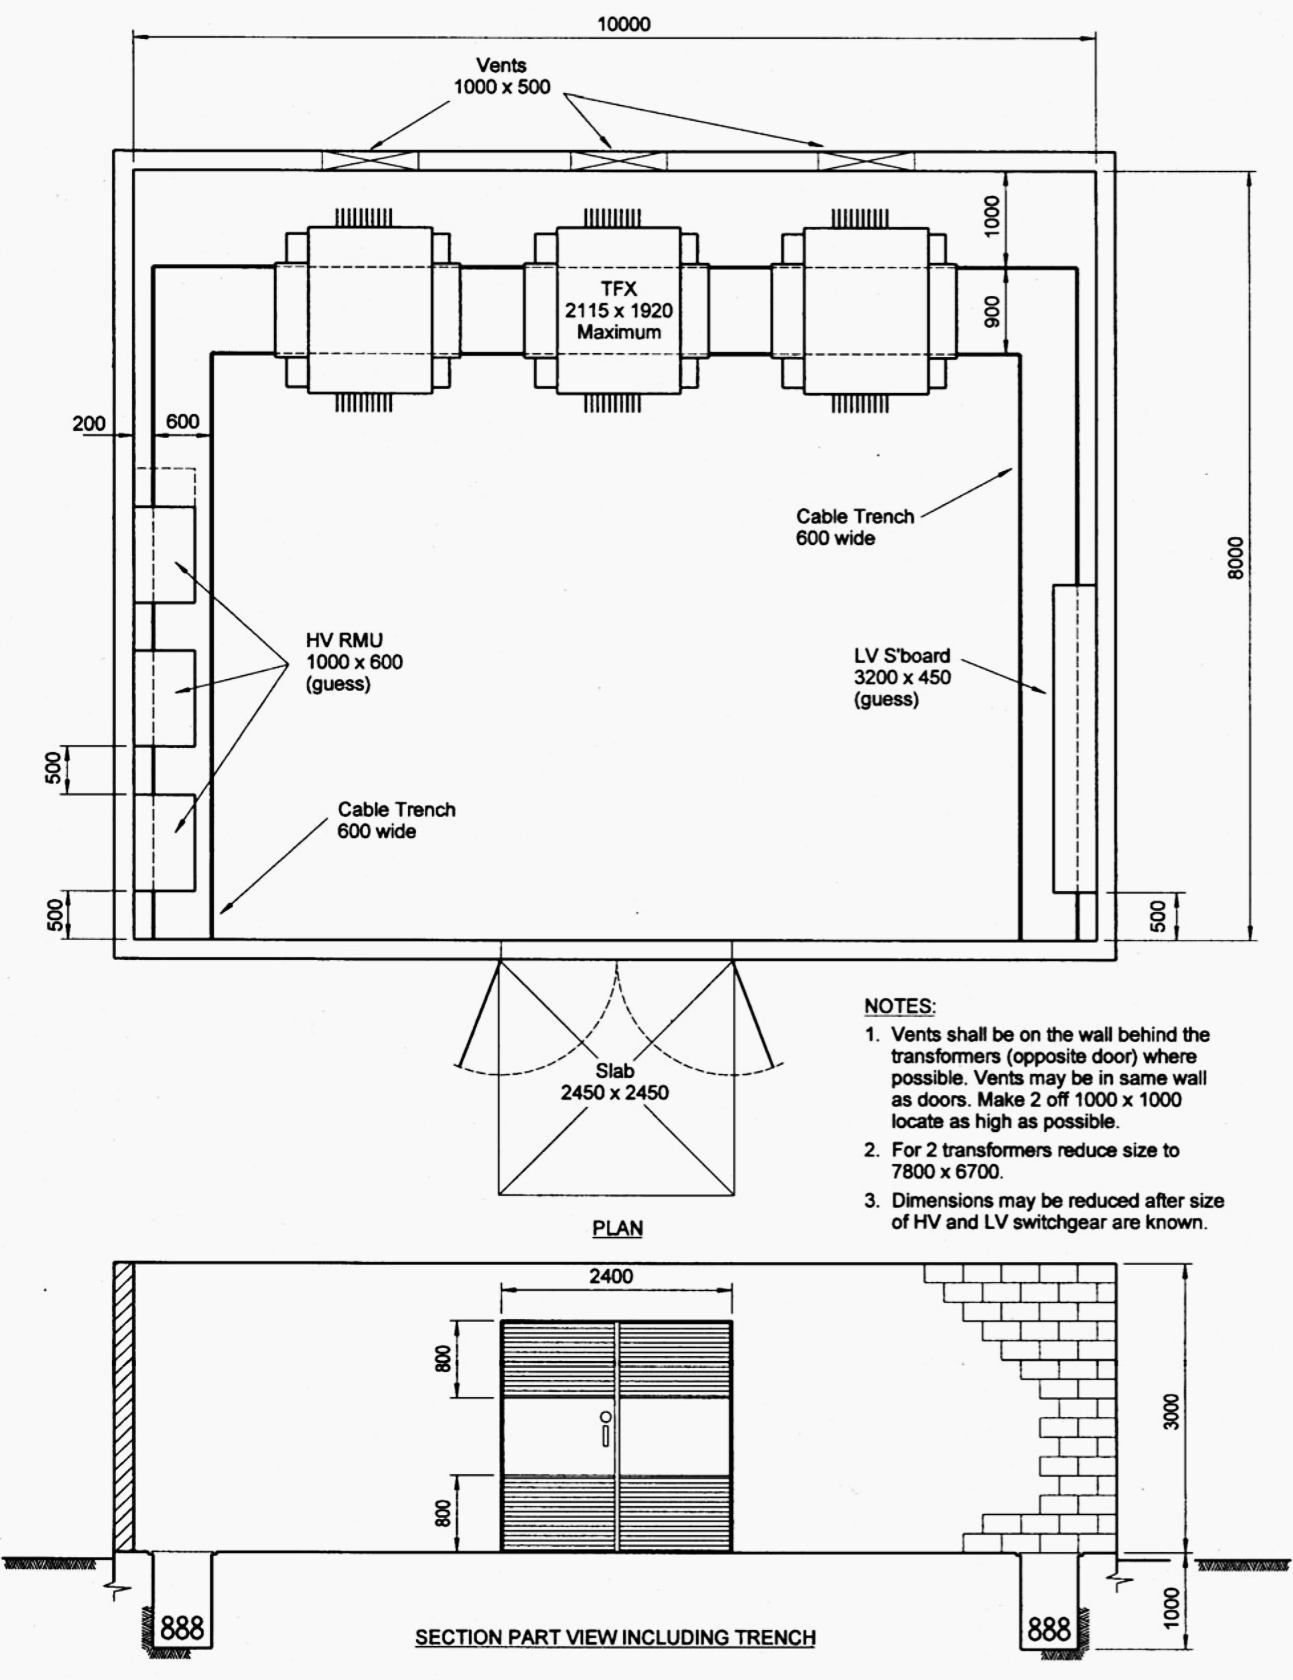 Indoor distribution substation layout with 3 transformers for Distribution substation